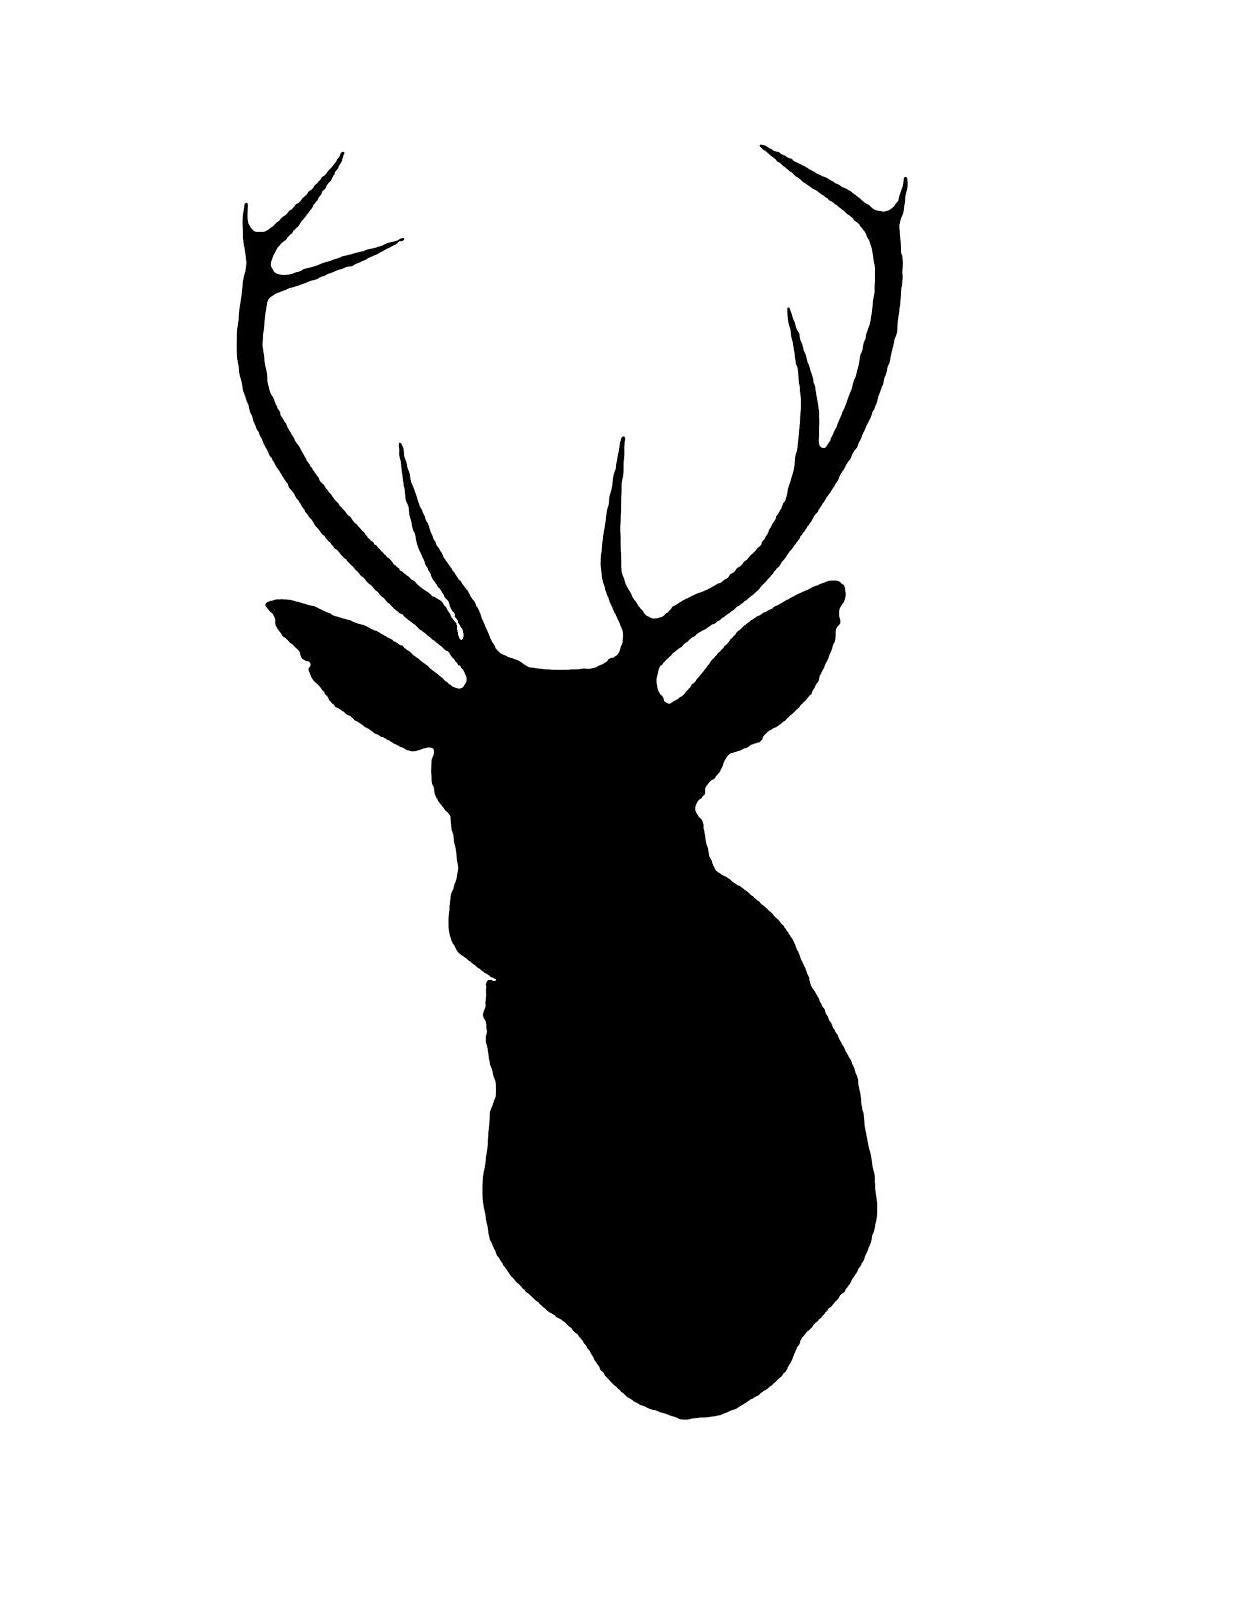 1236x1600 Deer Head Black And White Clipart